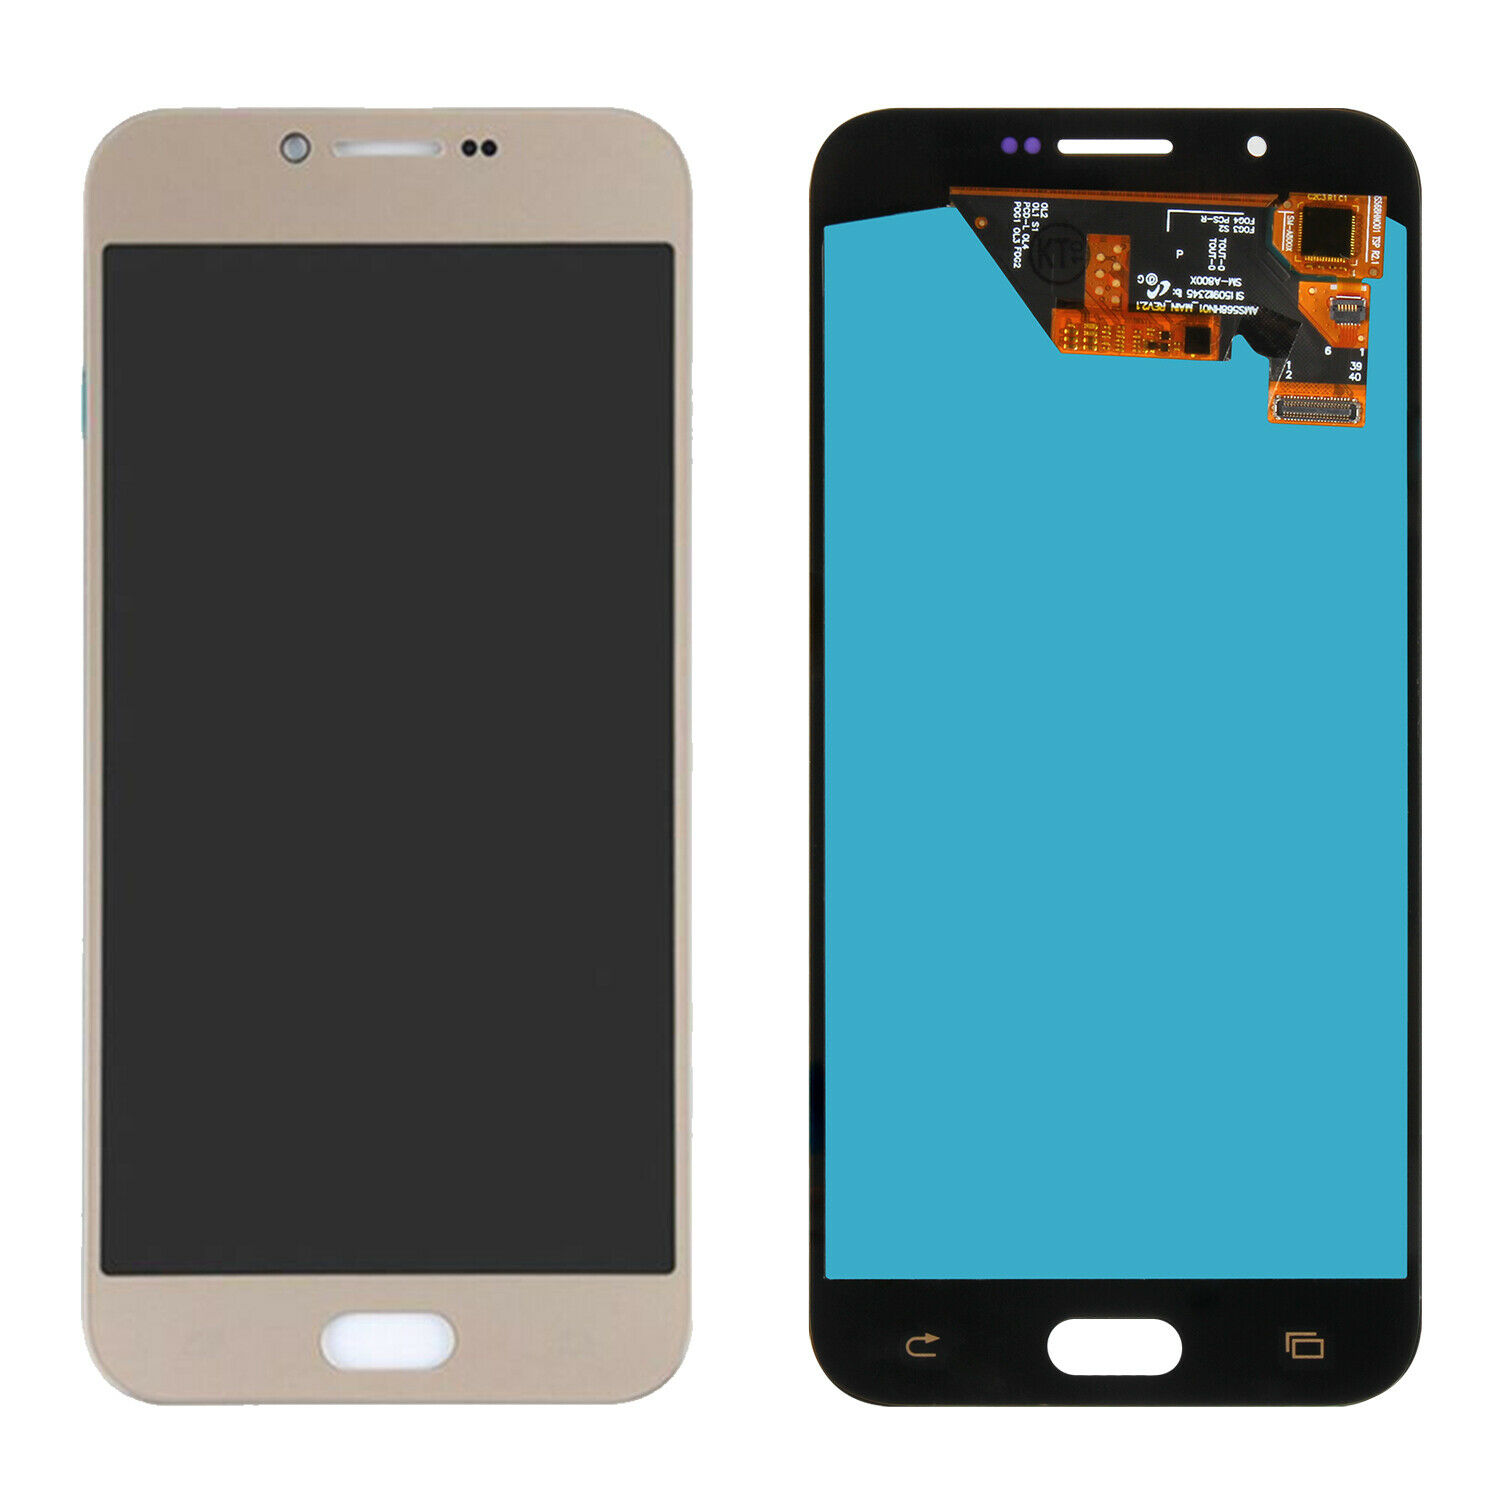 5.6 inches <font><b>LCD</b></font> For <font><b>Samsung</b></font> A8 2016 A8100 <font><b>A810</b></font> A810DS A810F <font><b>LCD</b></font> Display + Touch Screen Digitizer Assembly Super Amoled <font><b>LCD</b></font> Screen image